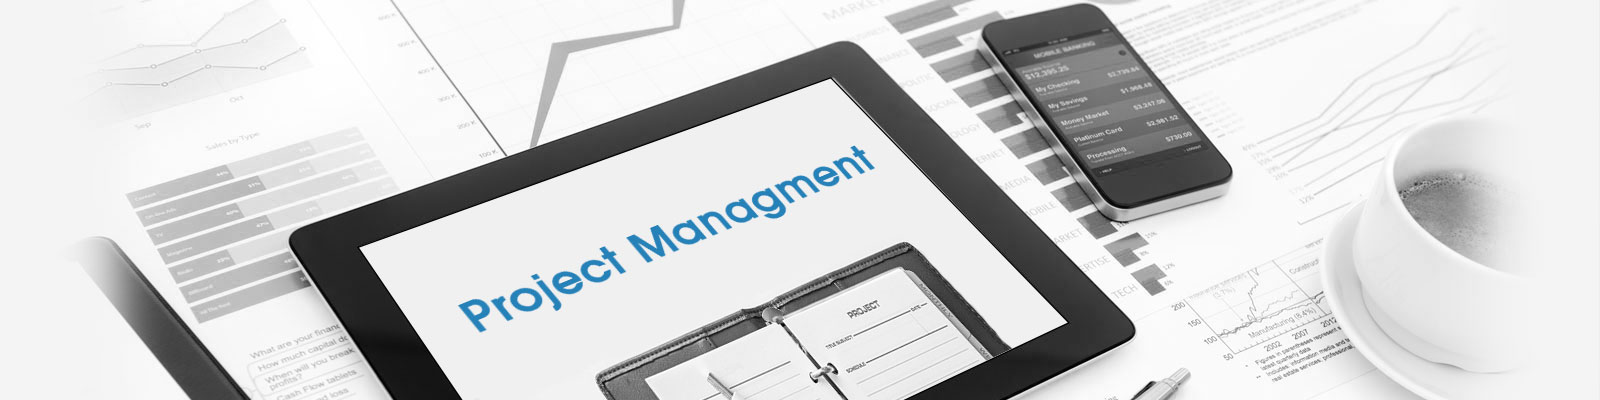 project management solution